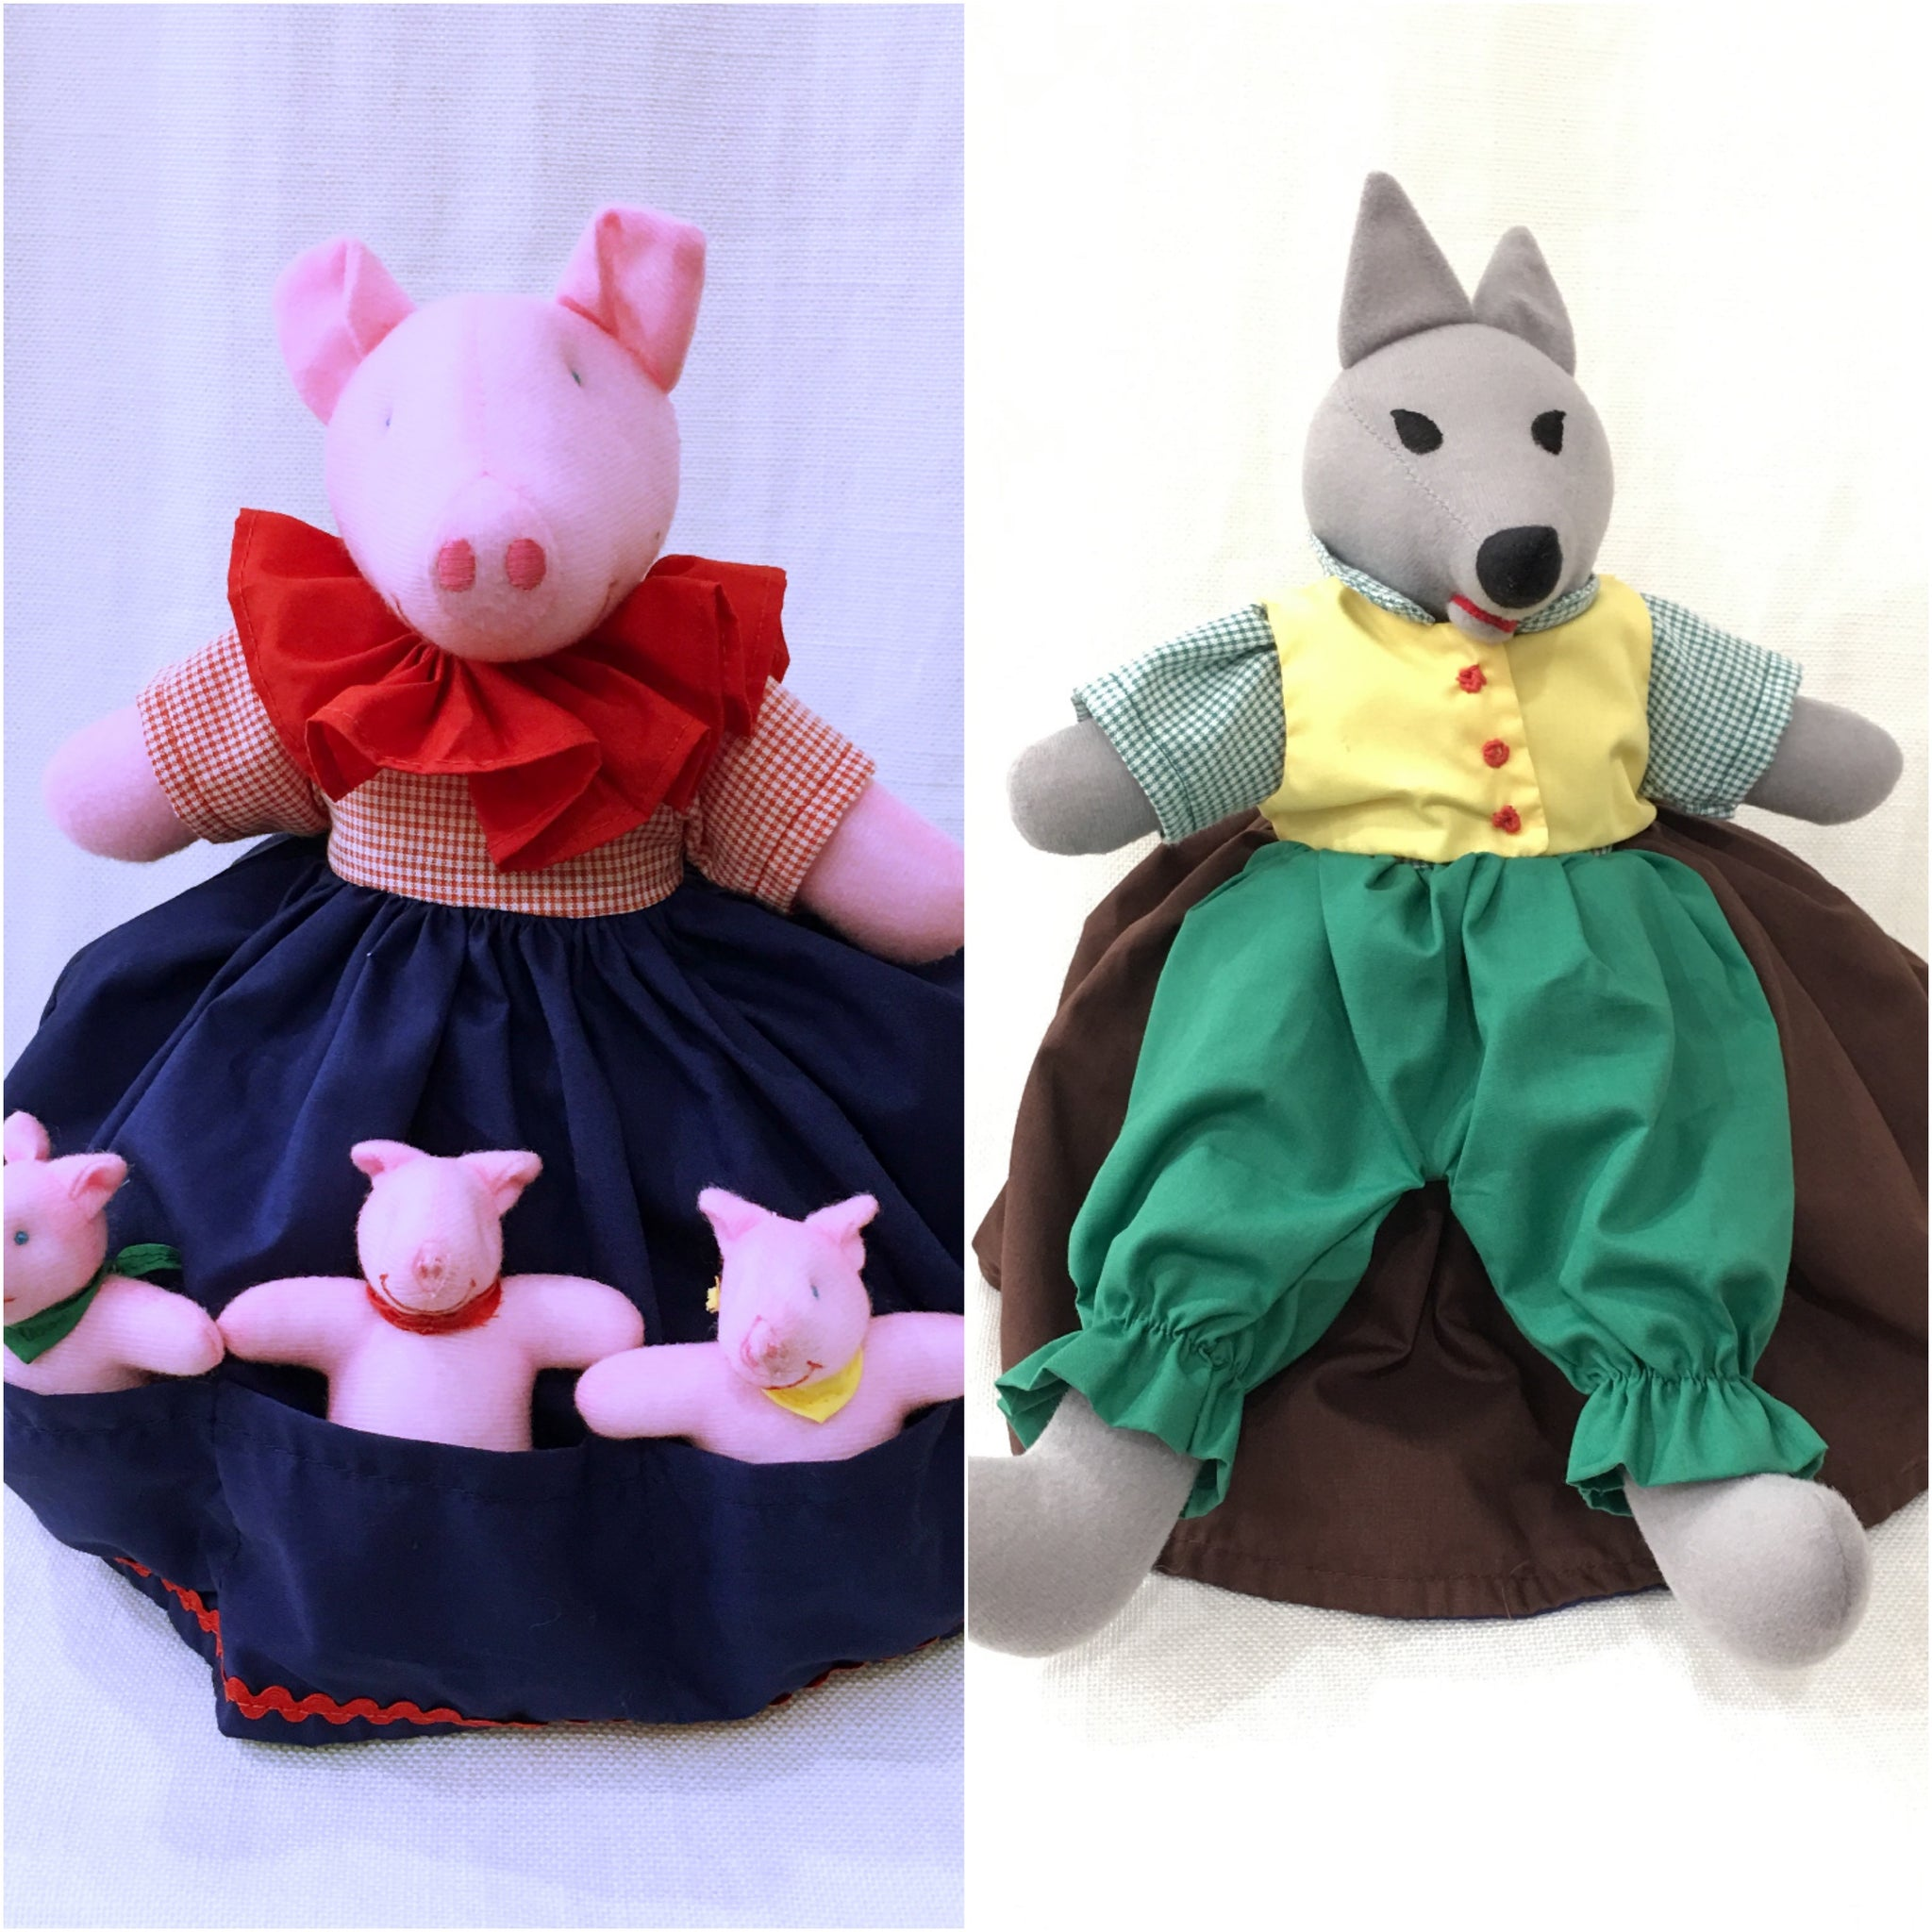 The Three Little Pigs Doll - Upside Down Toy Handmade in Thailand by the Fatima Centre | Shop Ethical Gifts for Children at ONLY JUST |